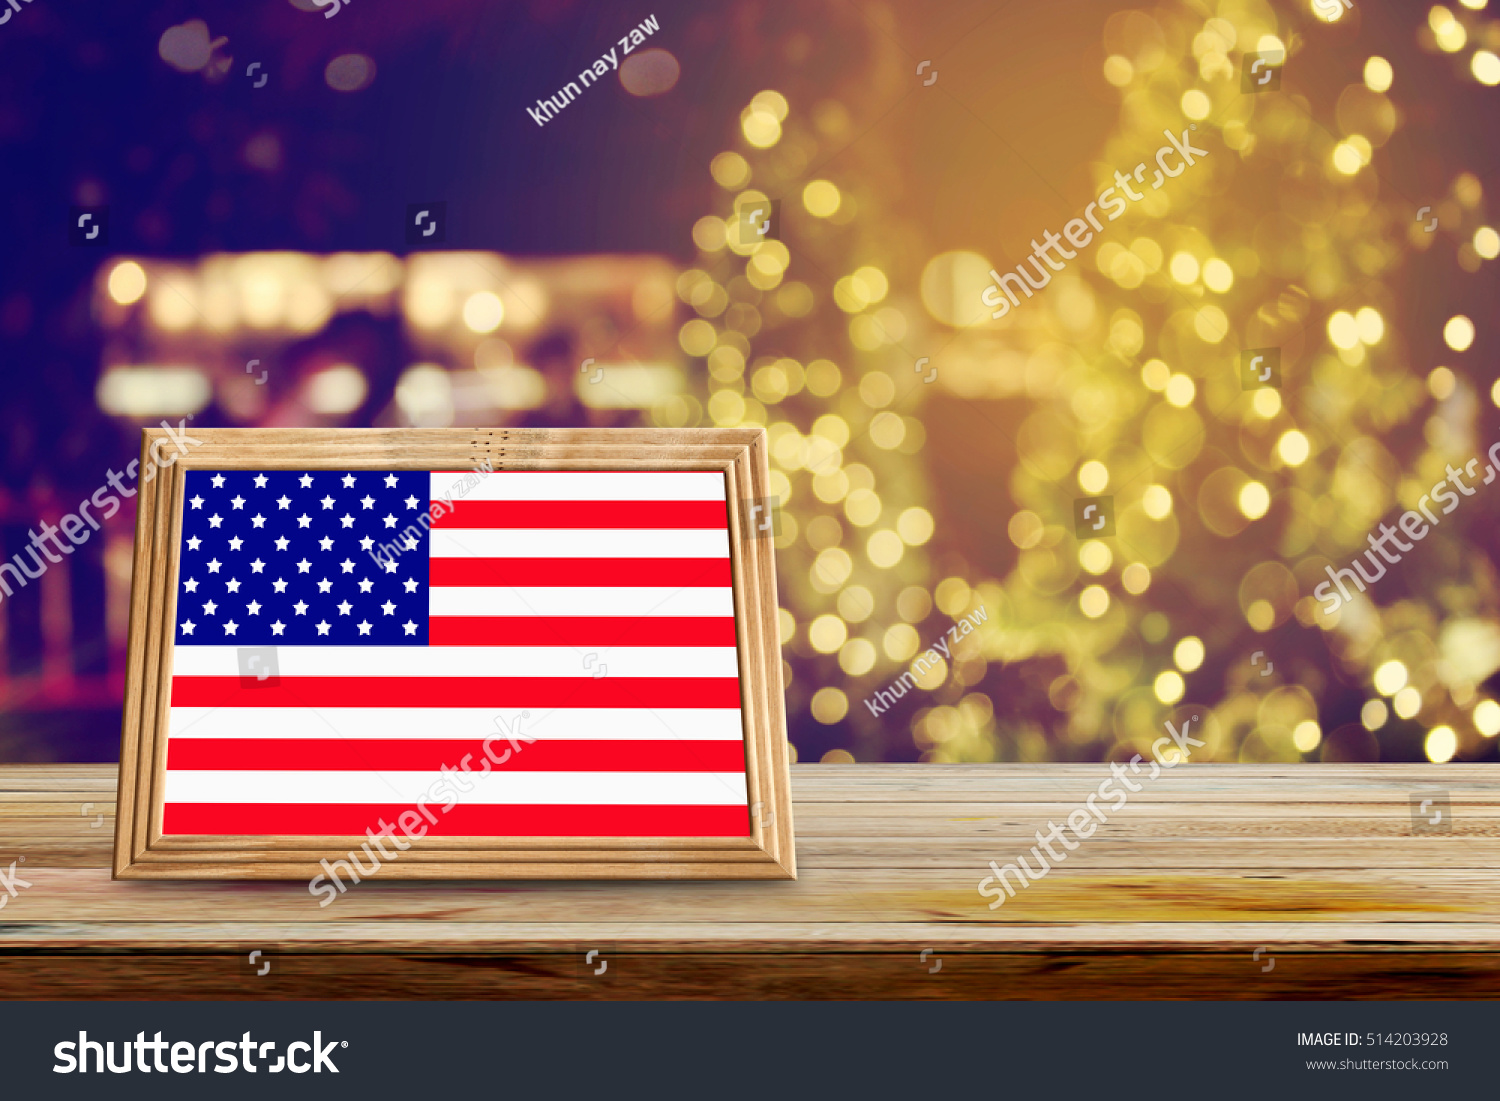 back and of zip that flag i forth the bugs curbs spin lights with around c made people go american little loved christmas always light interacting would particularly on sitting